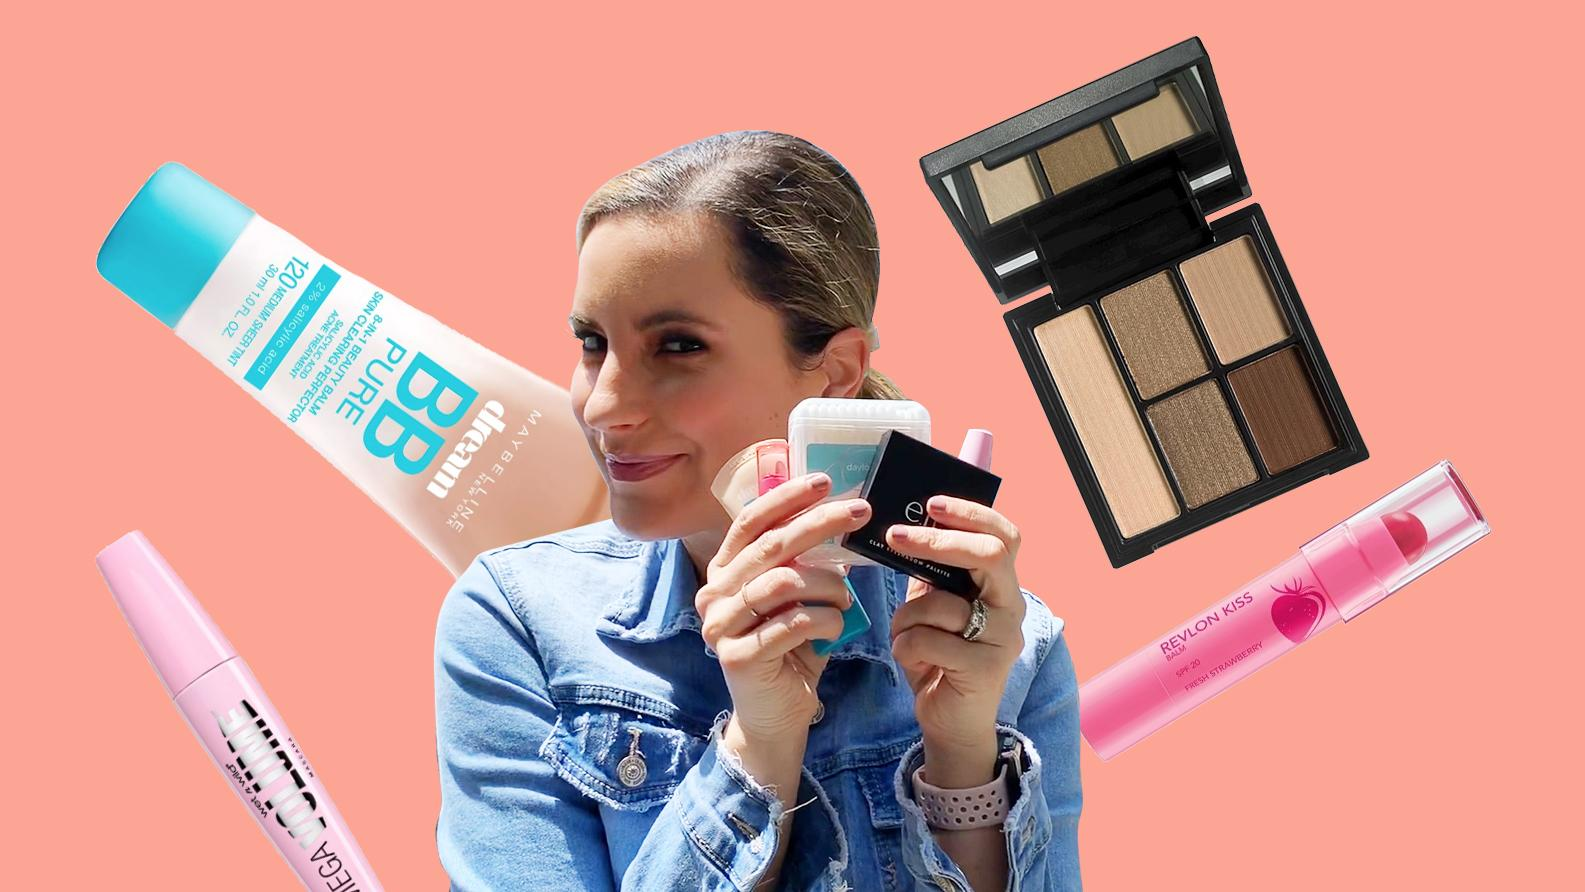 Best Drugstore Makeup: Here's What We Bought for $30 (Video